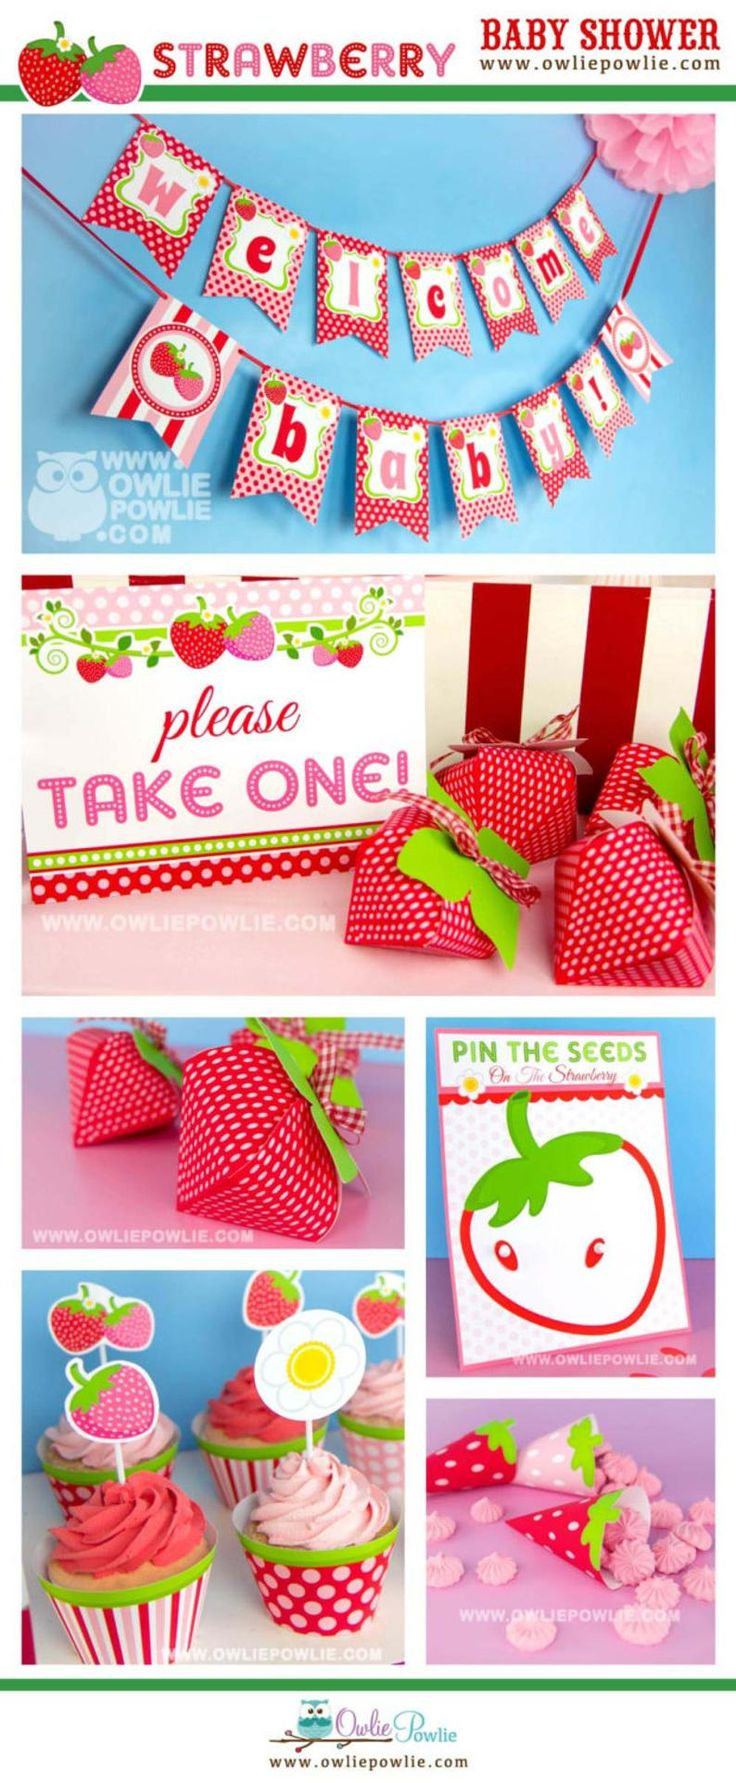 Strawberry BABY Shower Party Printable Package & Invitation, girl baby shower decorations, strawberry party decor, berry baby shower invites – Baby Shower